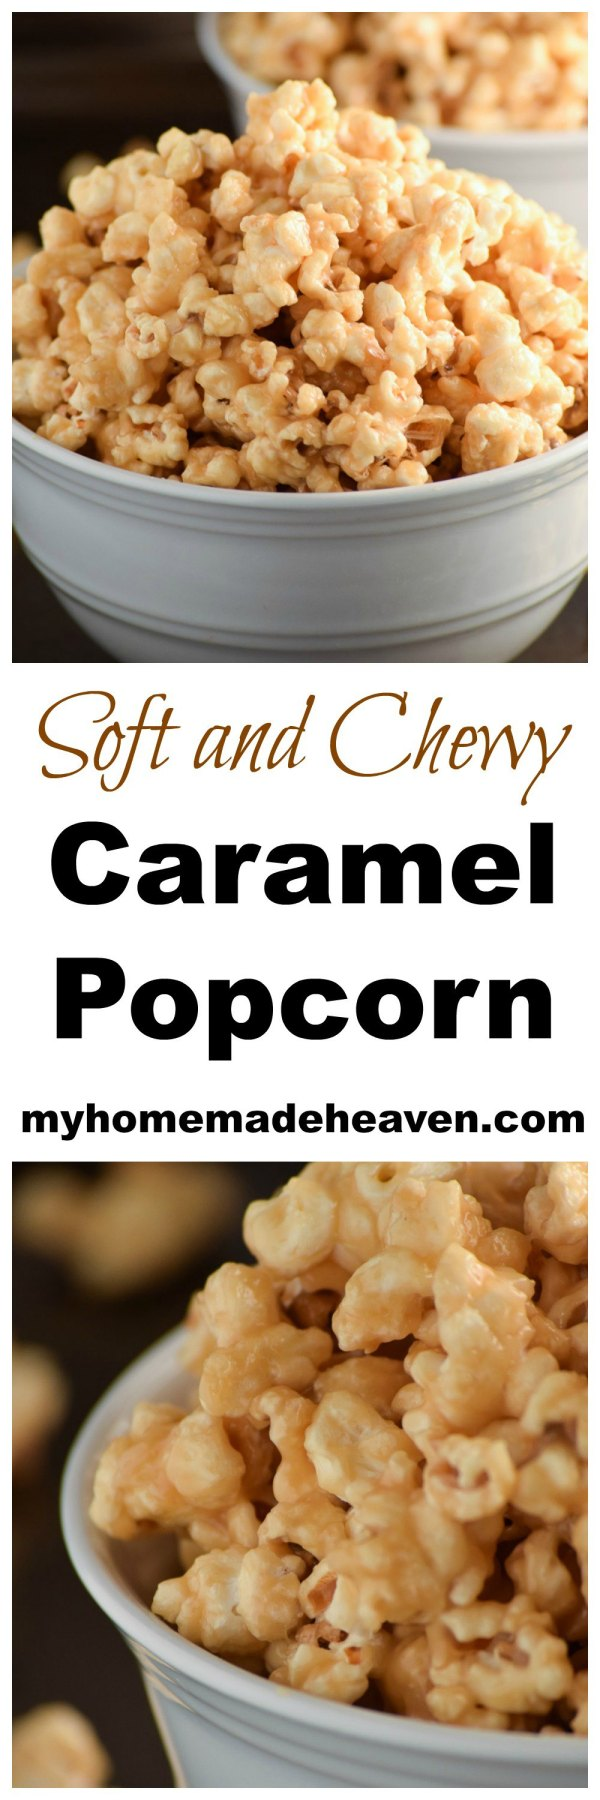 Soft and Chewy Caramel Popcorn My Homemade Heaven